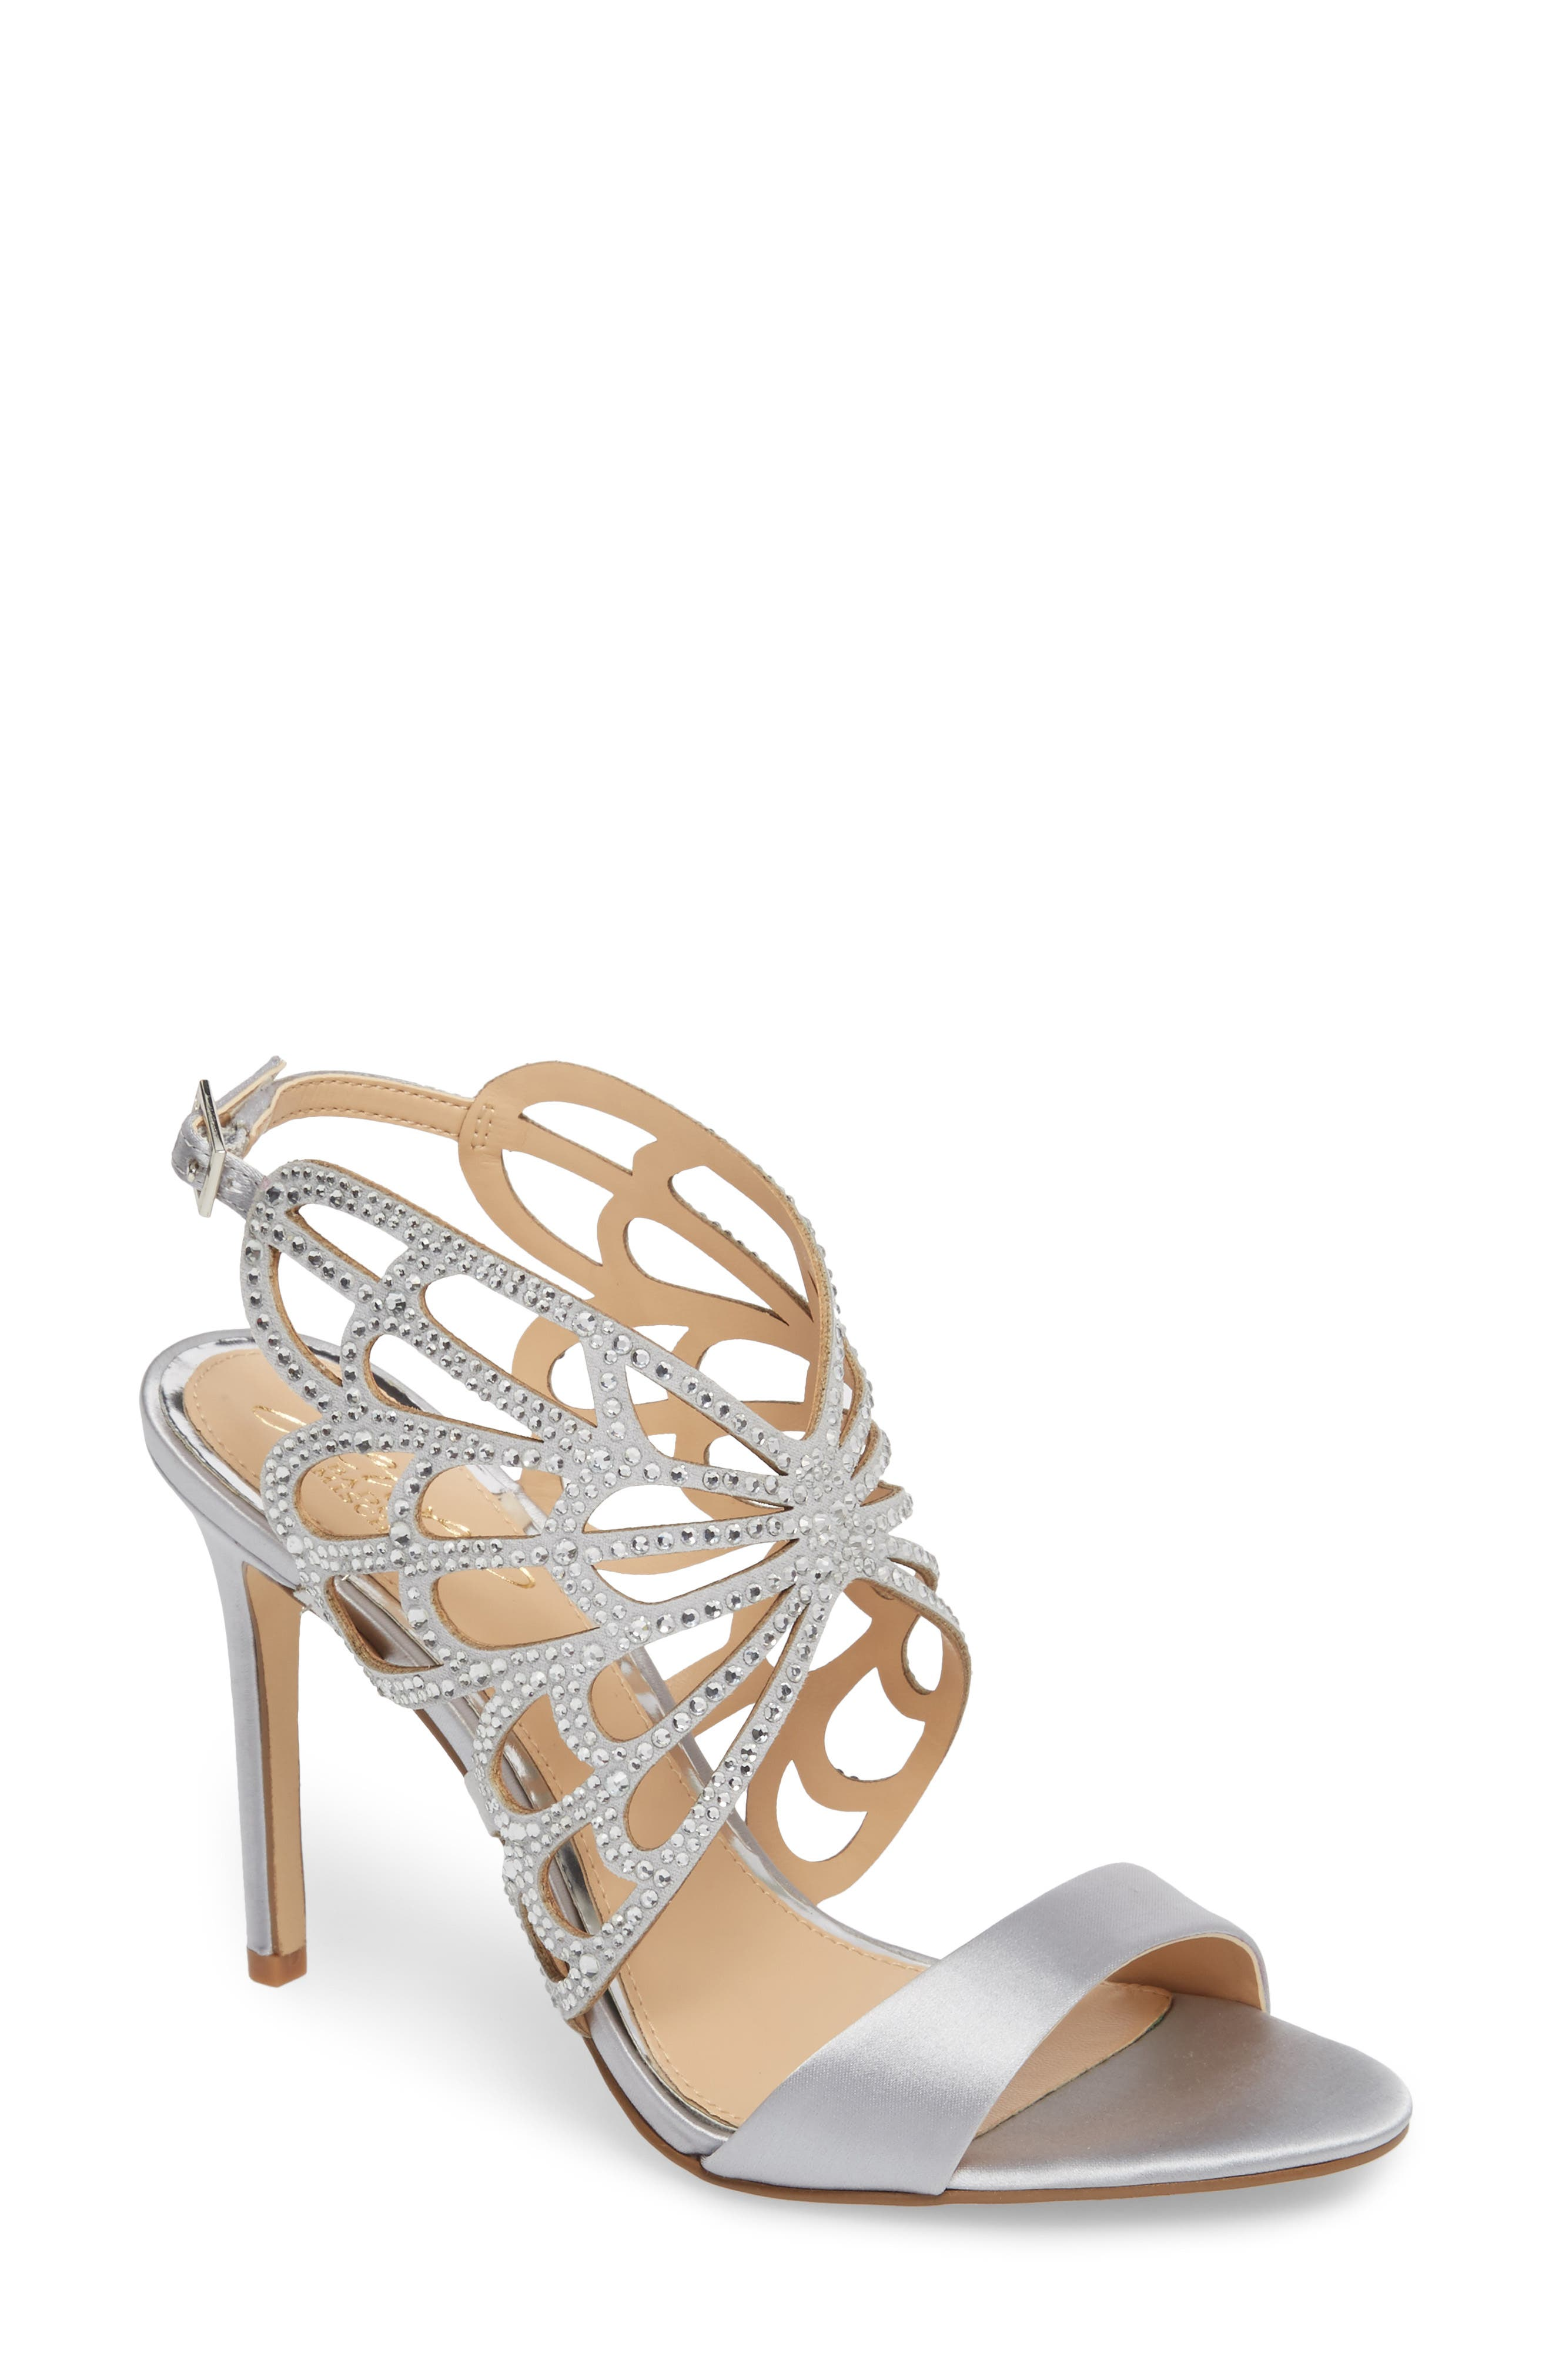 Taresa Crystal Embellished Butterfly Sandal,                             Main thumbnail 1, color,                             Silver Satin